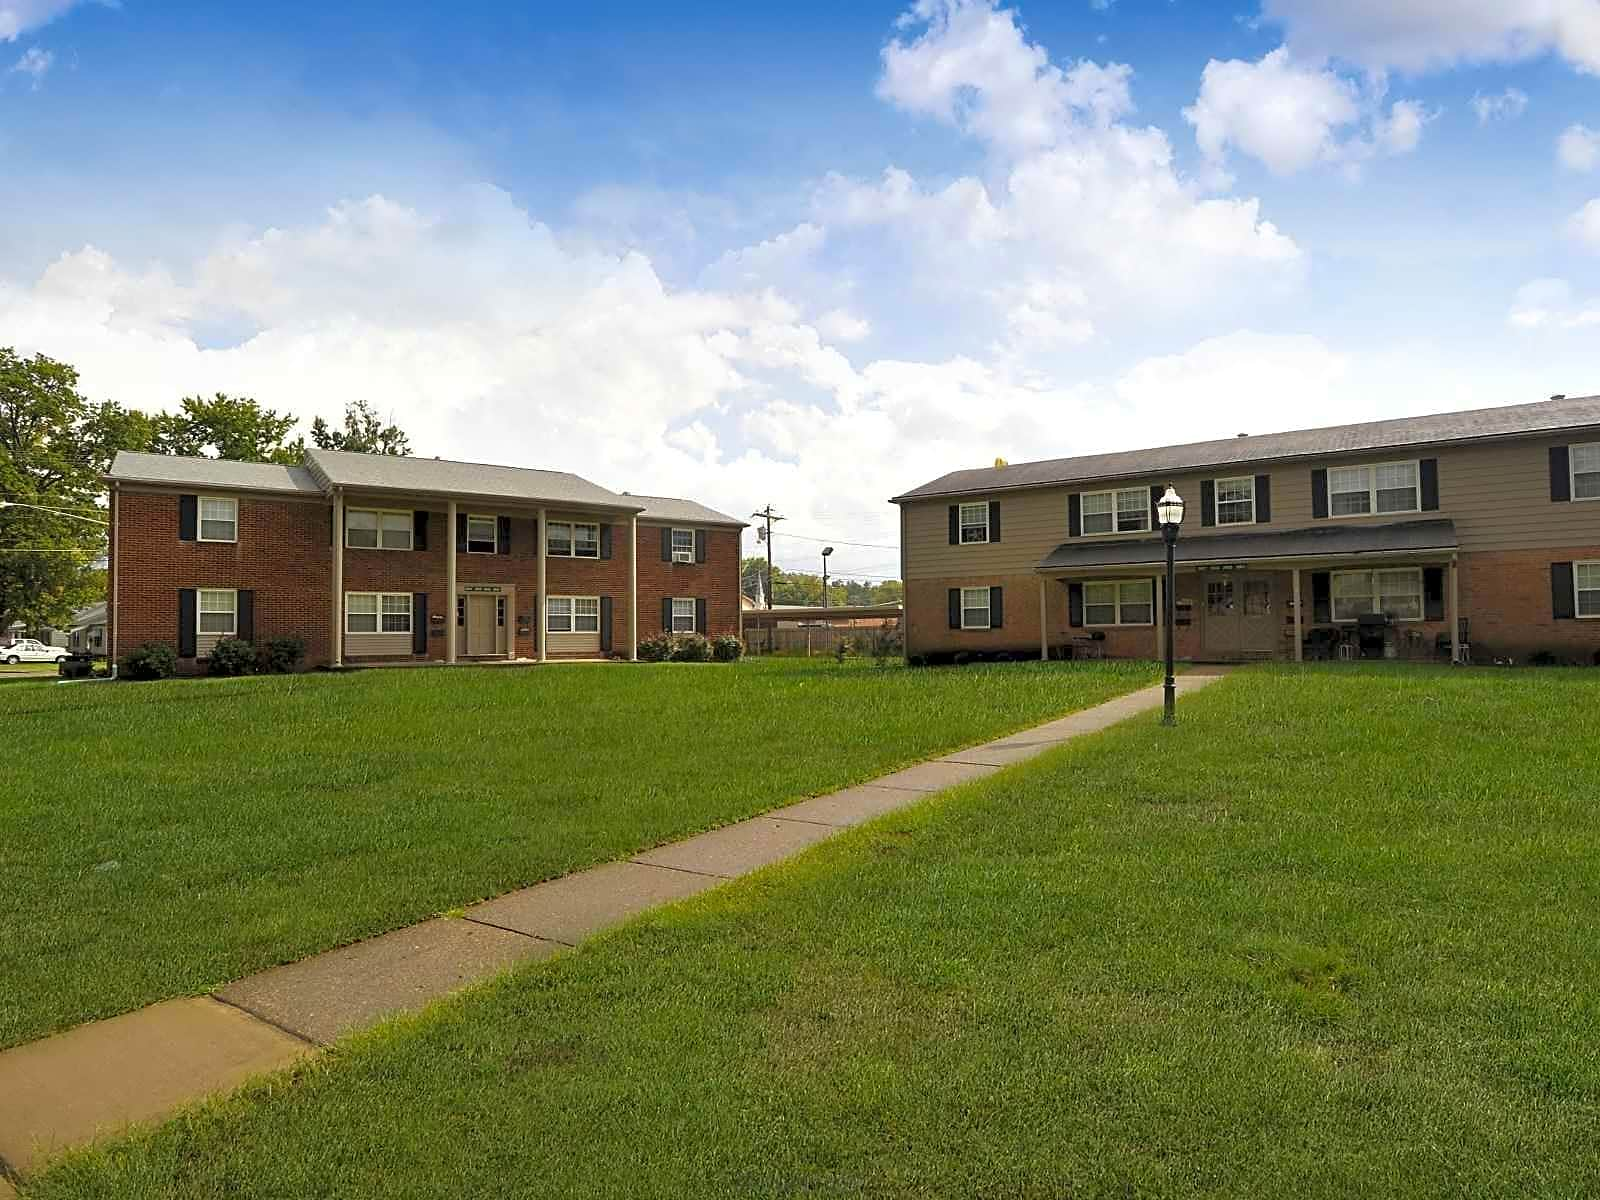 Apartments Near Ross Medical Education Center-Evansville Apartment Village for Ross Medical Education Center-Evansville Students in Evansville, IN